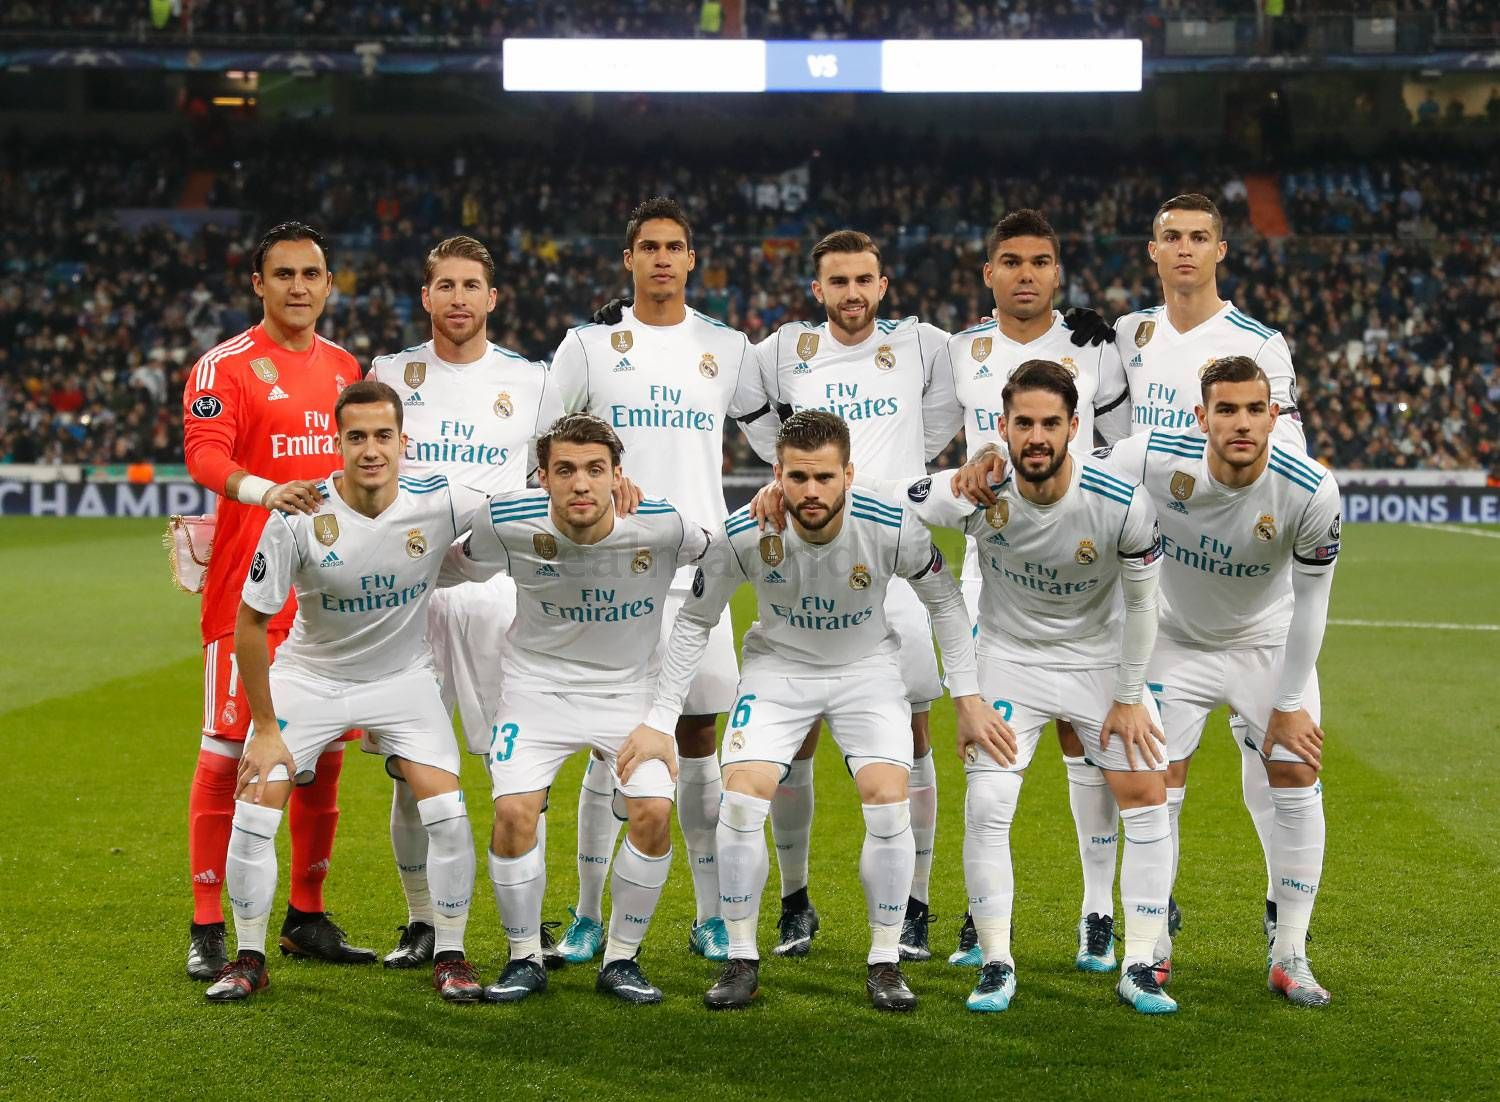 Pin By Jose On Real Madriding Cristiano Ronaldo Cr7 Real Madrid Cristiano Ronaldo